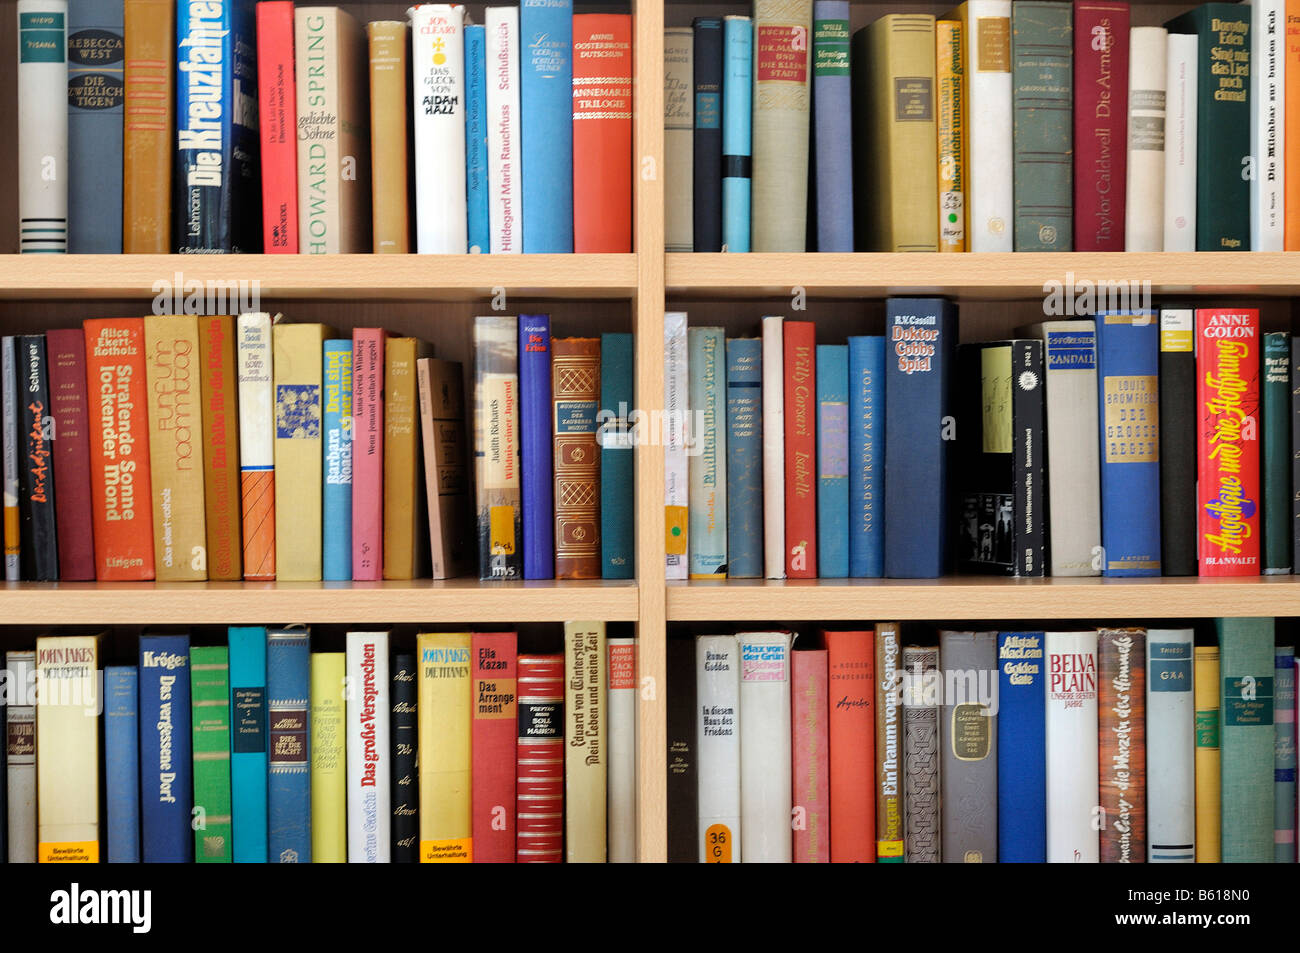 Bookshelf Filled With Books Stock Photo 20927116 Alamy